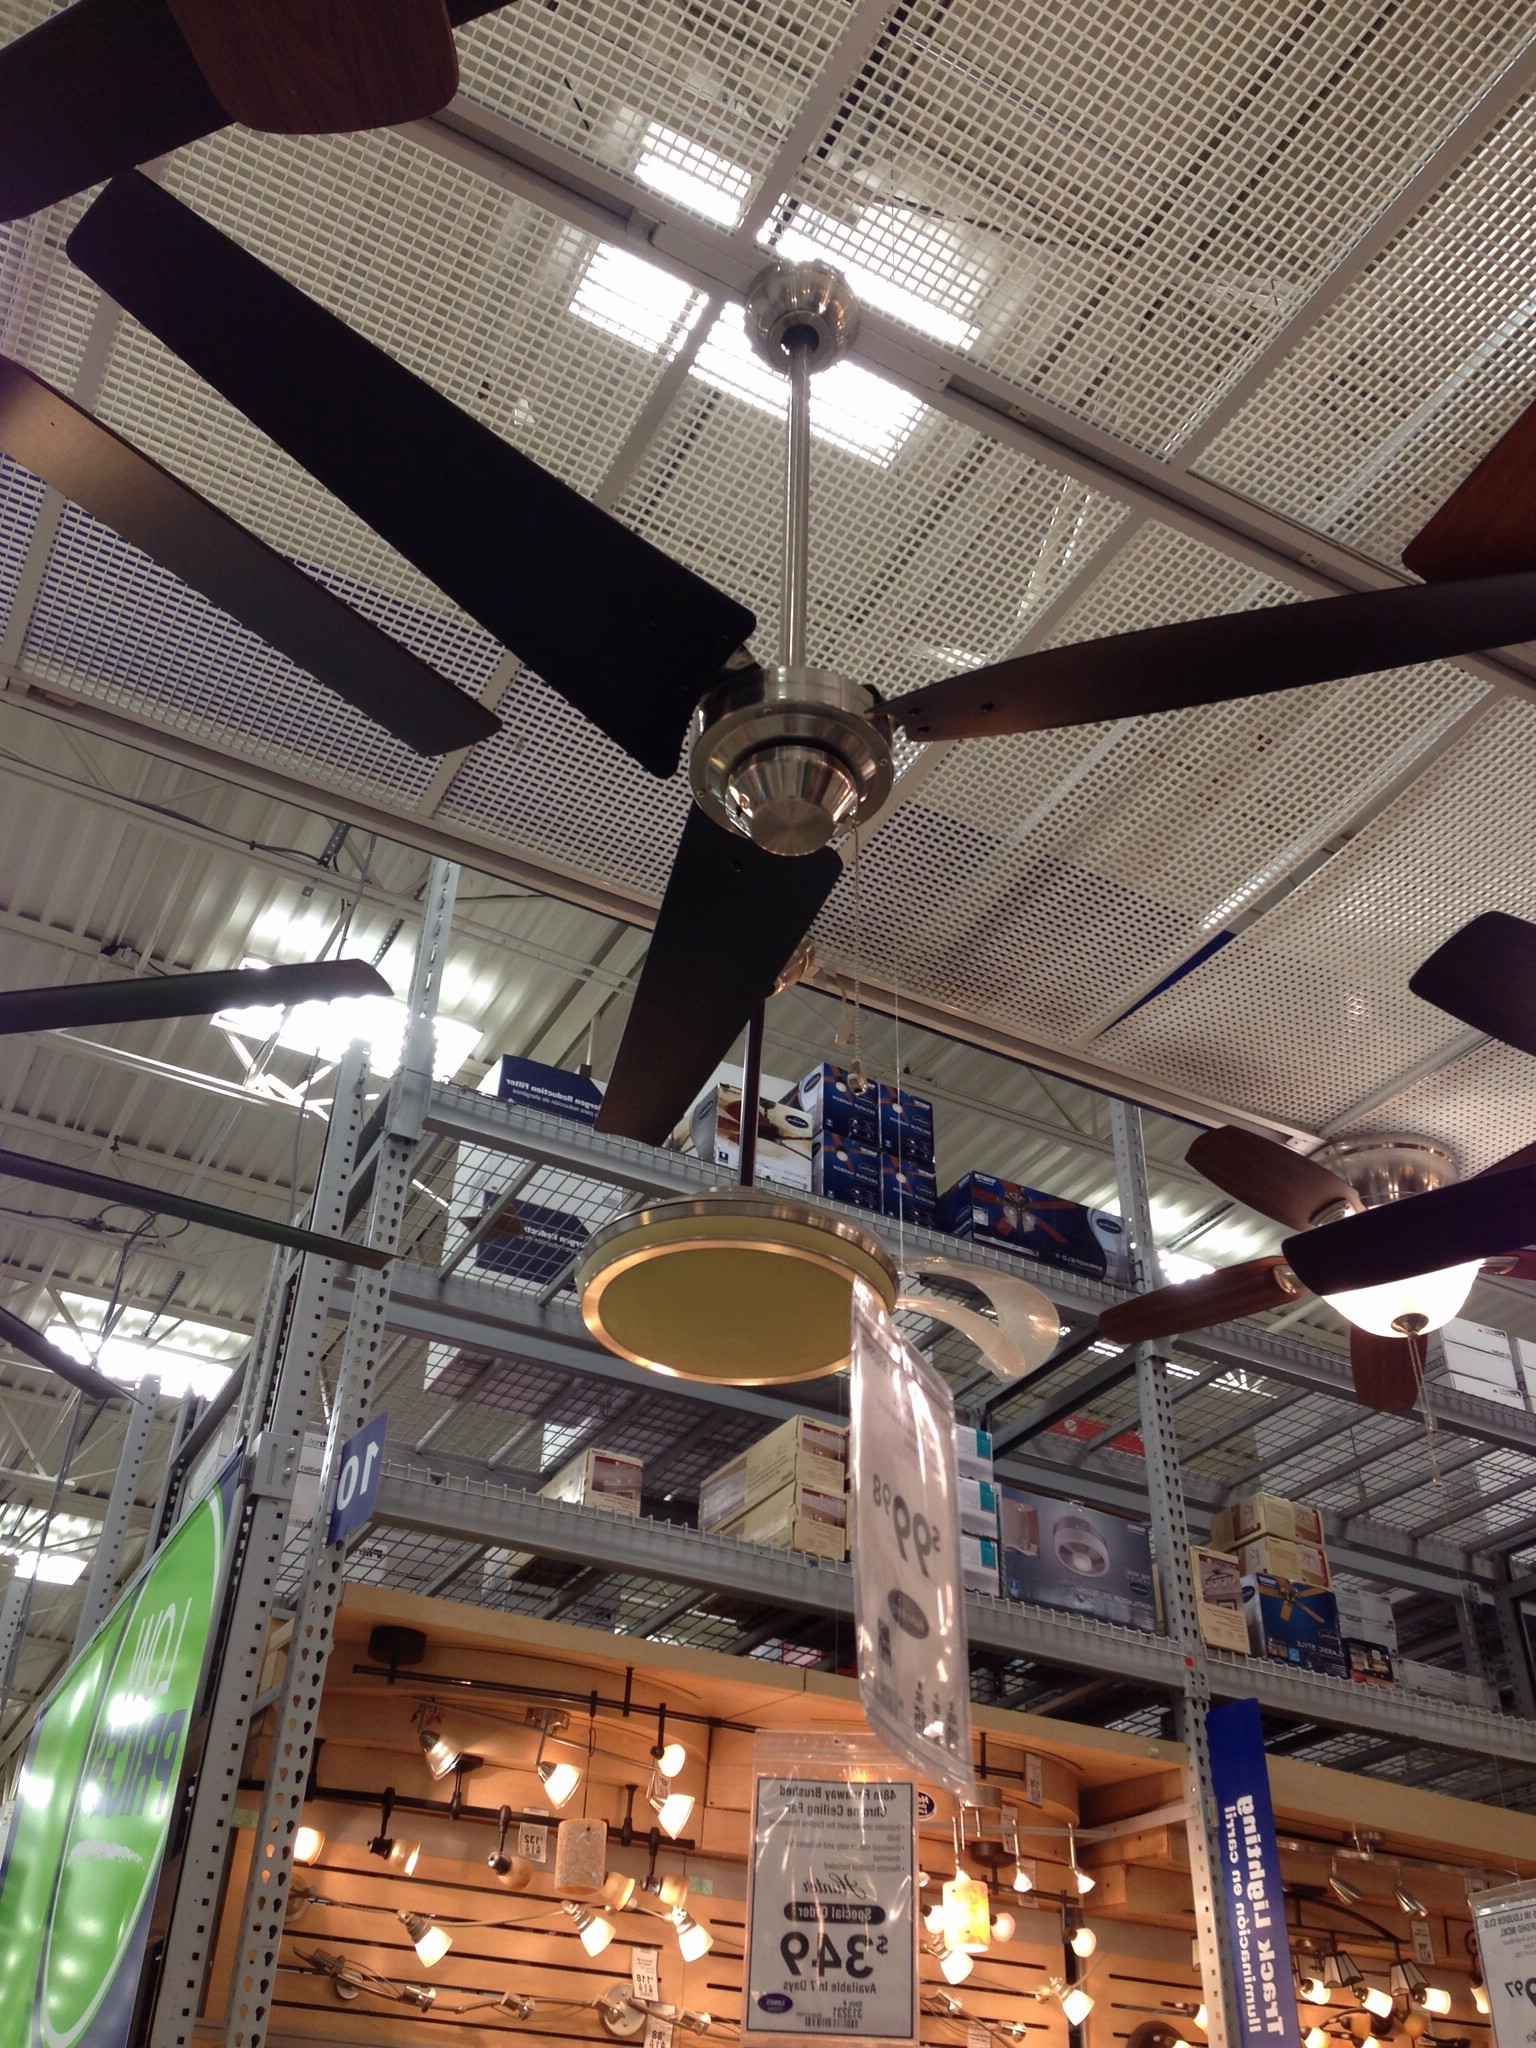 Menards Outdoor Ceiling Fans Lovely Lamps Menards Ceiling Fans For Preferred Outdoor Ceiling Fans At Menards (Gallery 17 of 20)